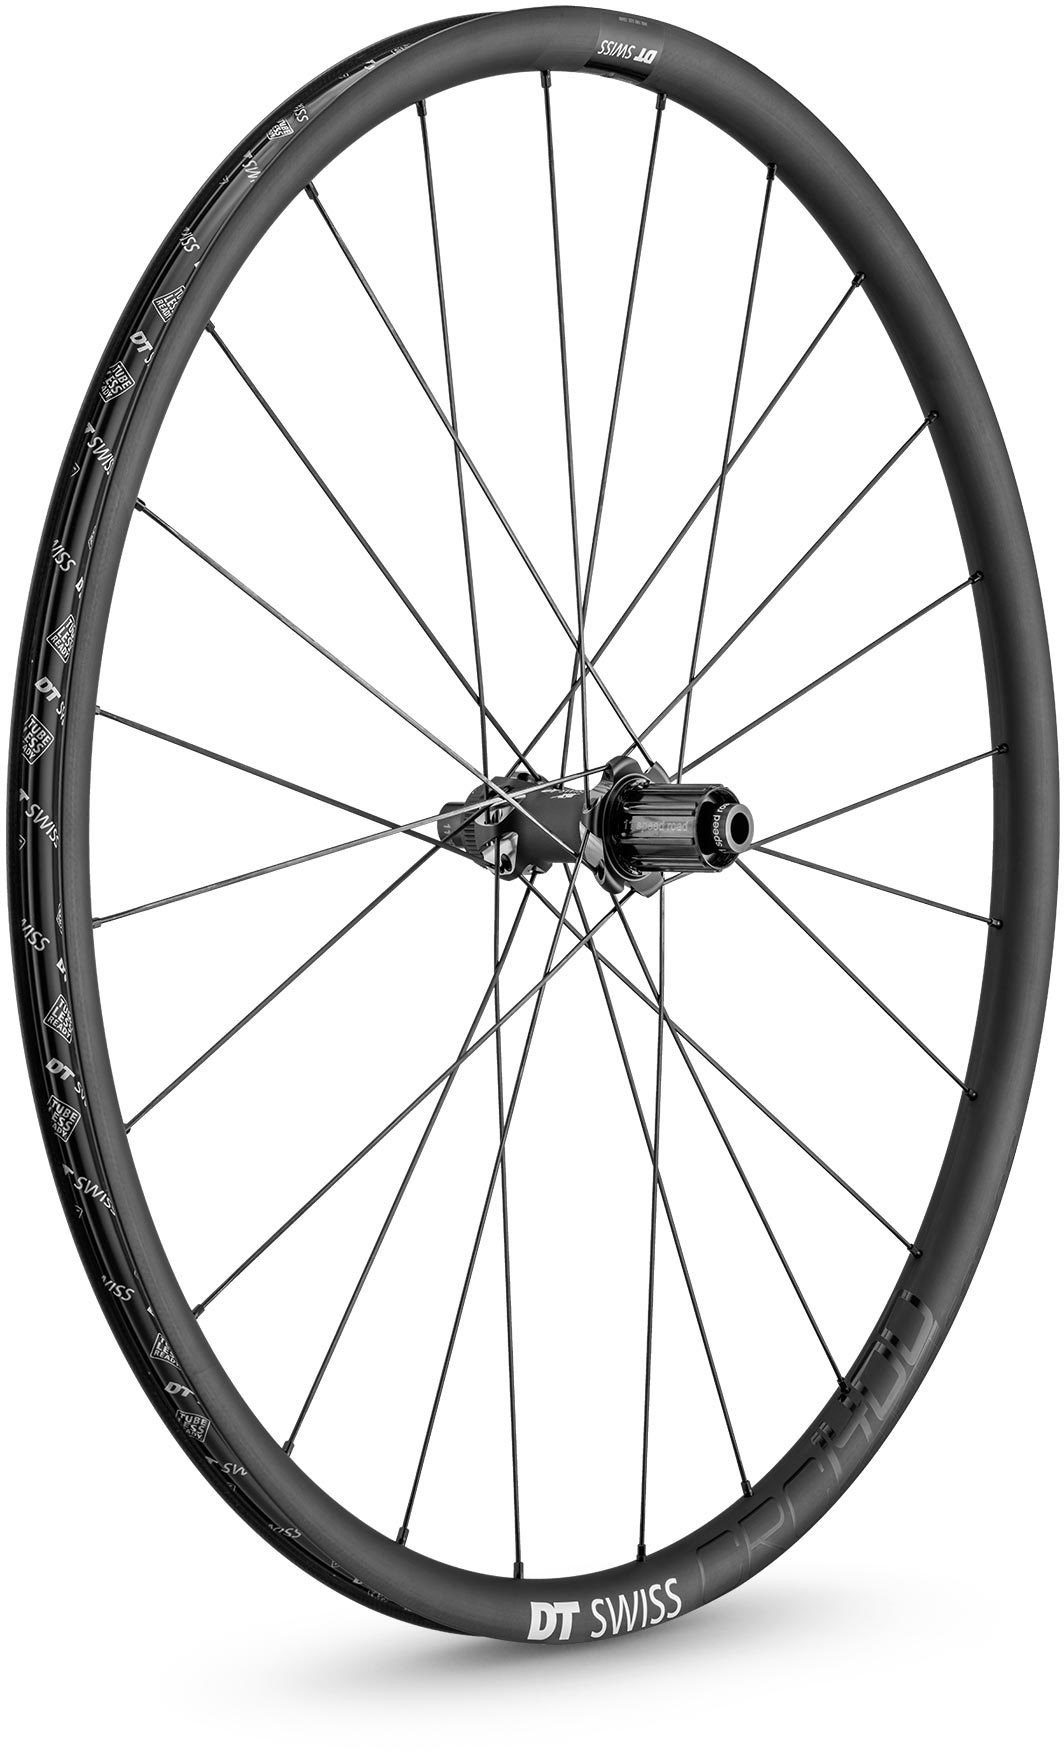 "DT Swiss Laufrad »CRC 1400 Spline 24 HR 29"" Carbon CL 142/12mm TA«"